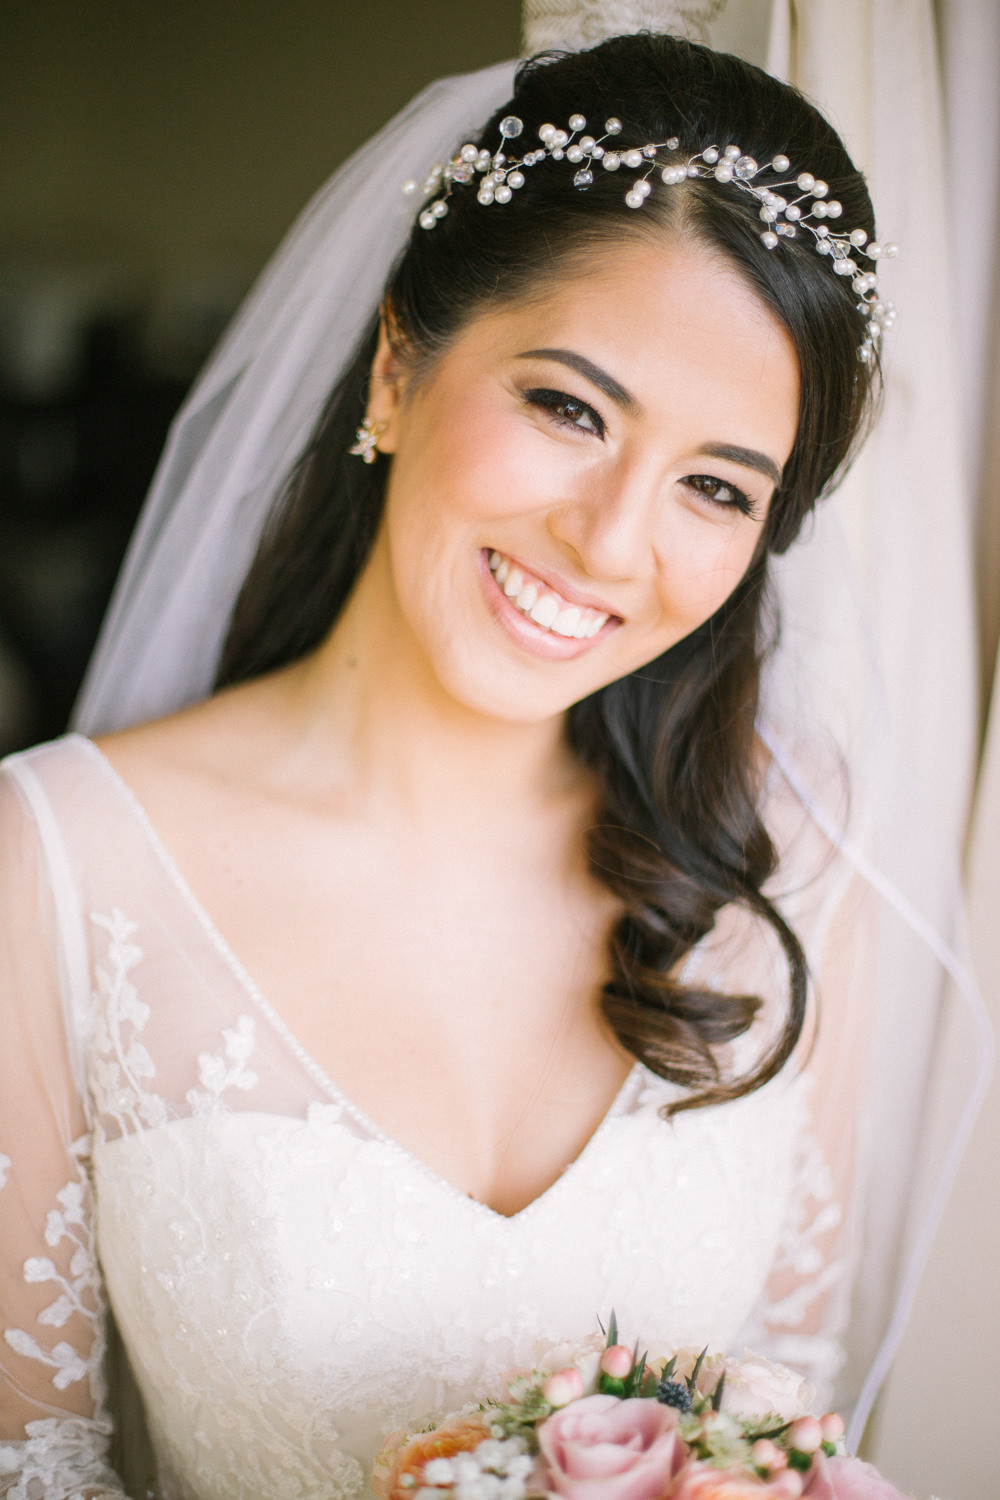 Bride Bridal V Neck Long Sleeve Embroidered Hair Vine Pearl Barn At Barra Castle Wedding Ceranna Photography